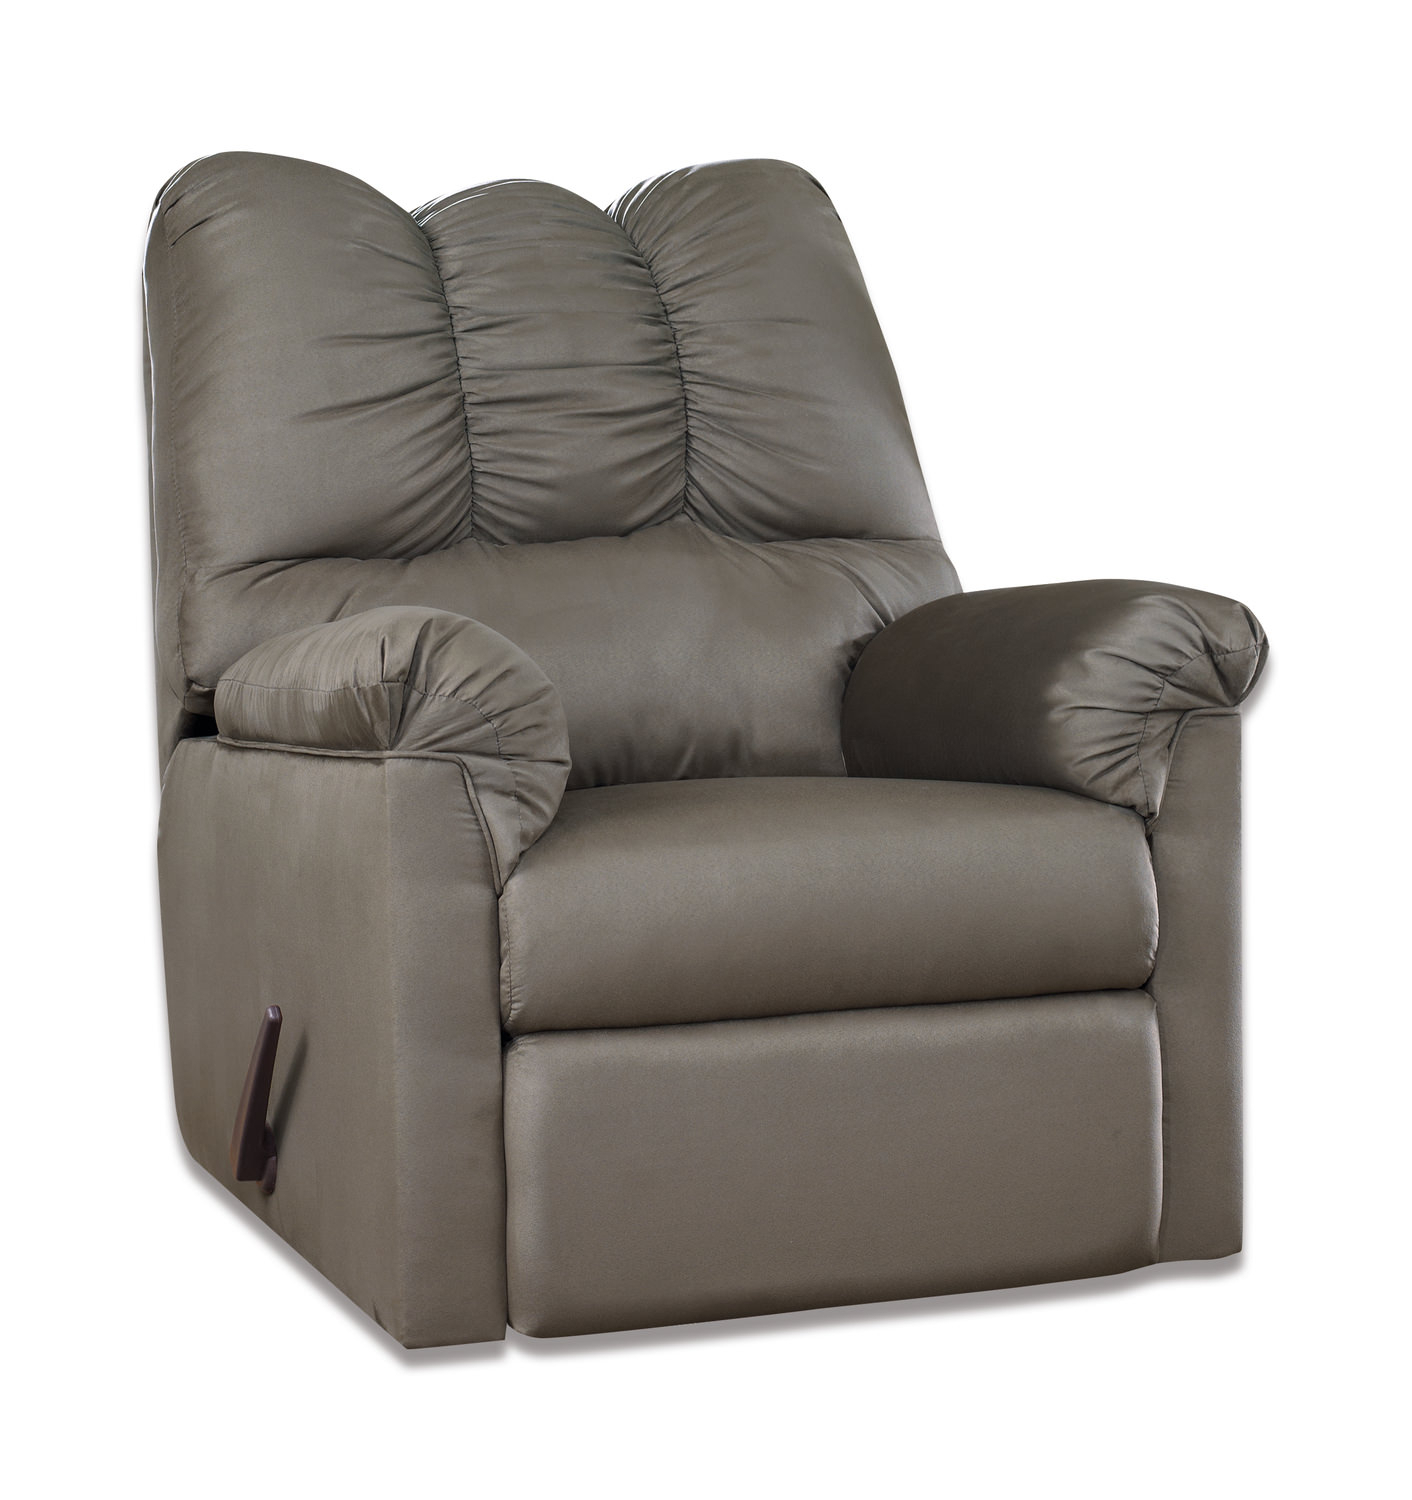 Recliners – Leather, Rocker & Swivel – Hom Furniture For Swivel Tobacco Leather Chairs (Photo 18 of 25)